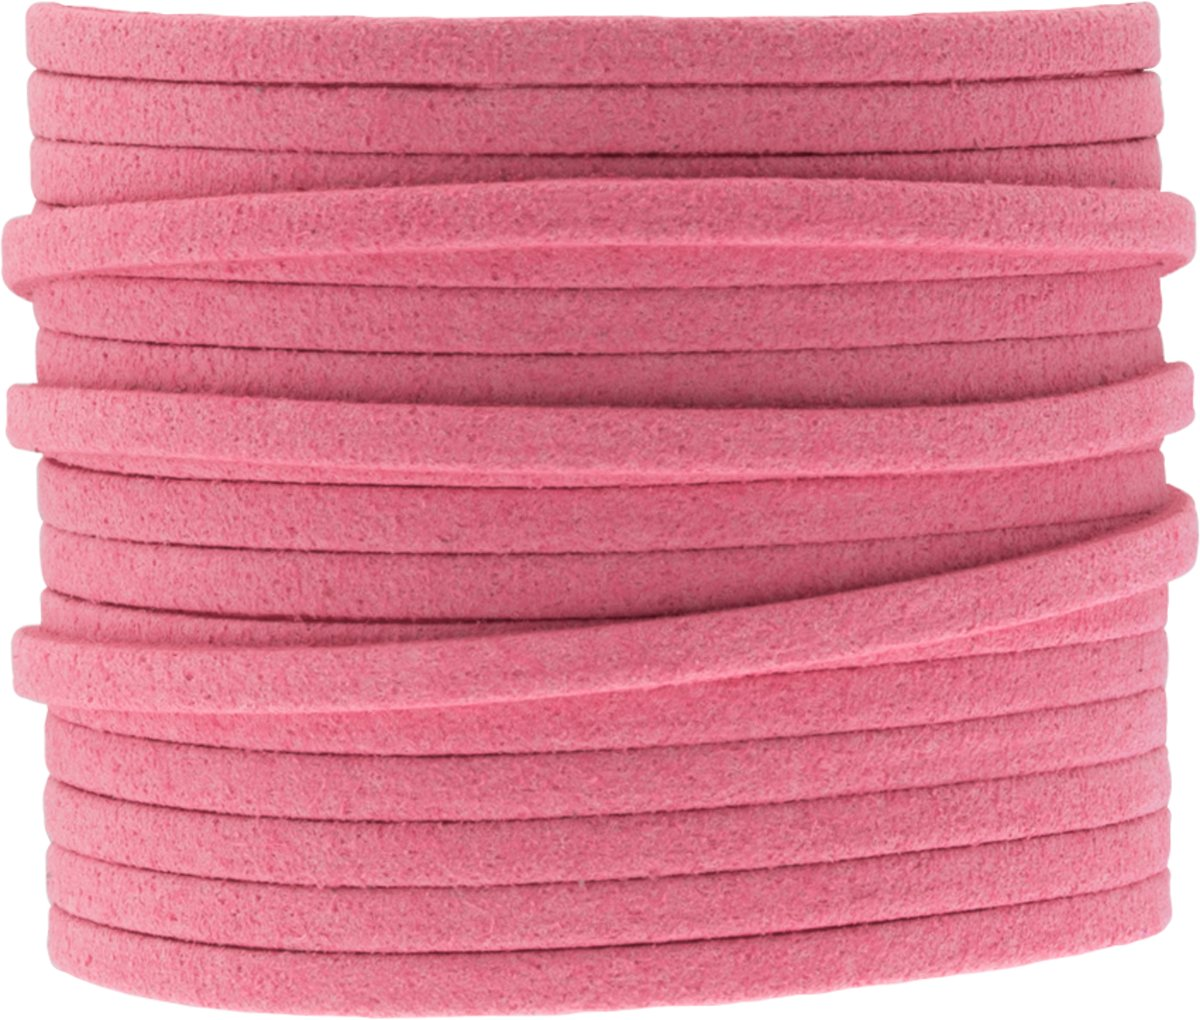 Faux Suede Veter (3 mm) Bright Candy Floss (5 Meter)